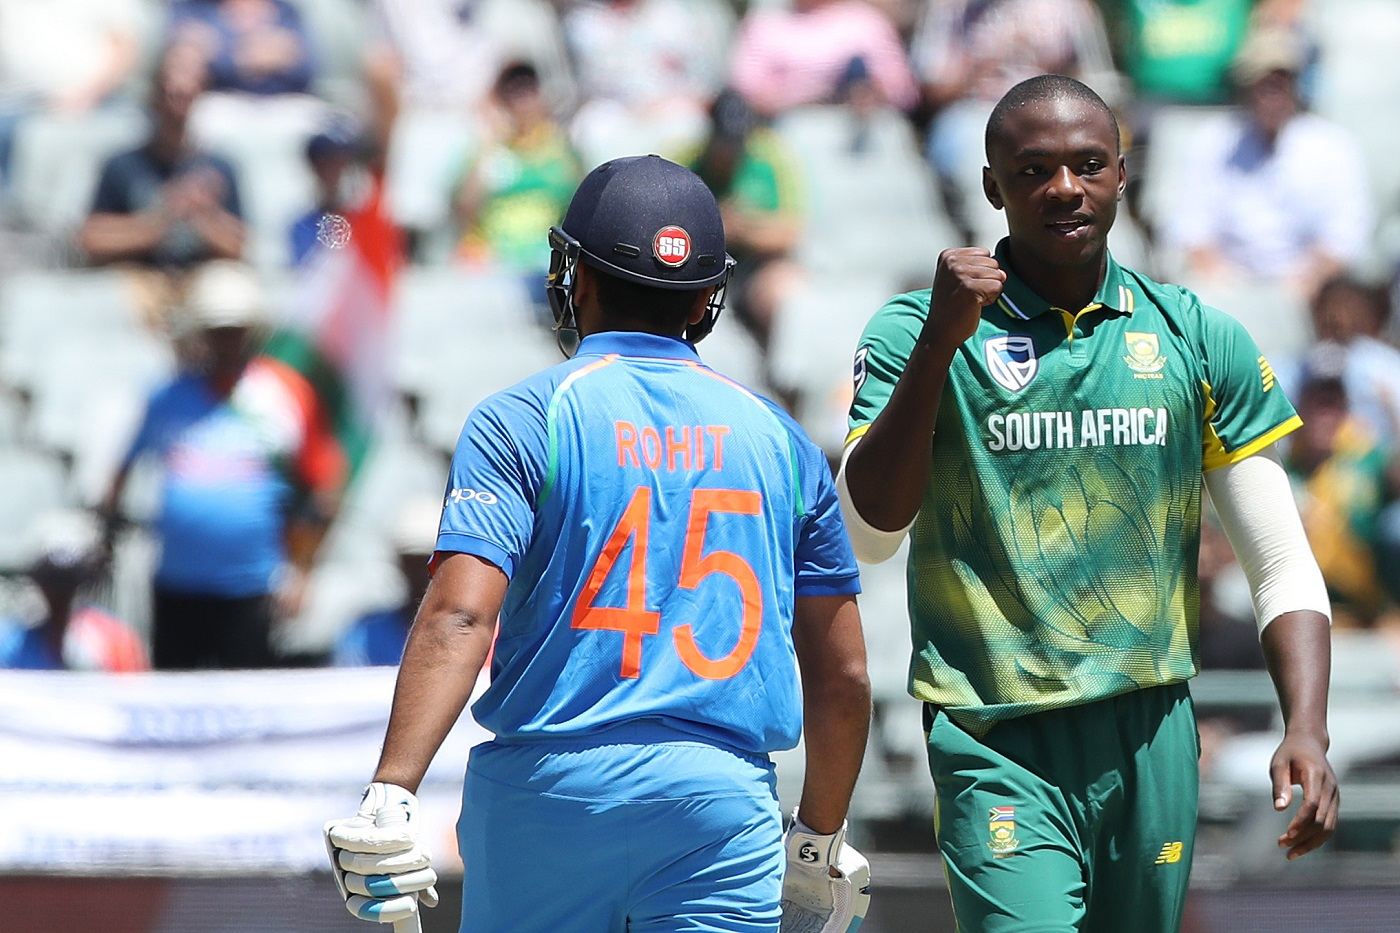 #SAvIND - Virat Kohli and Wrist Spinners gift 124 Run Victory in the 3rd ODI